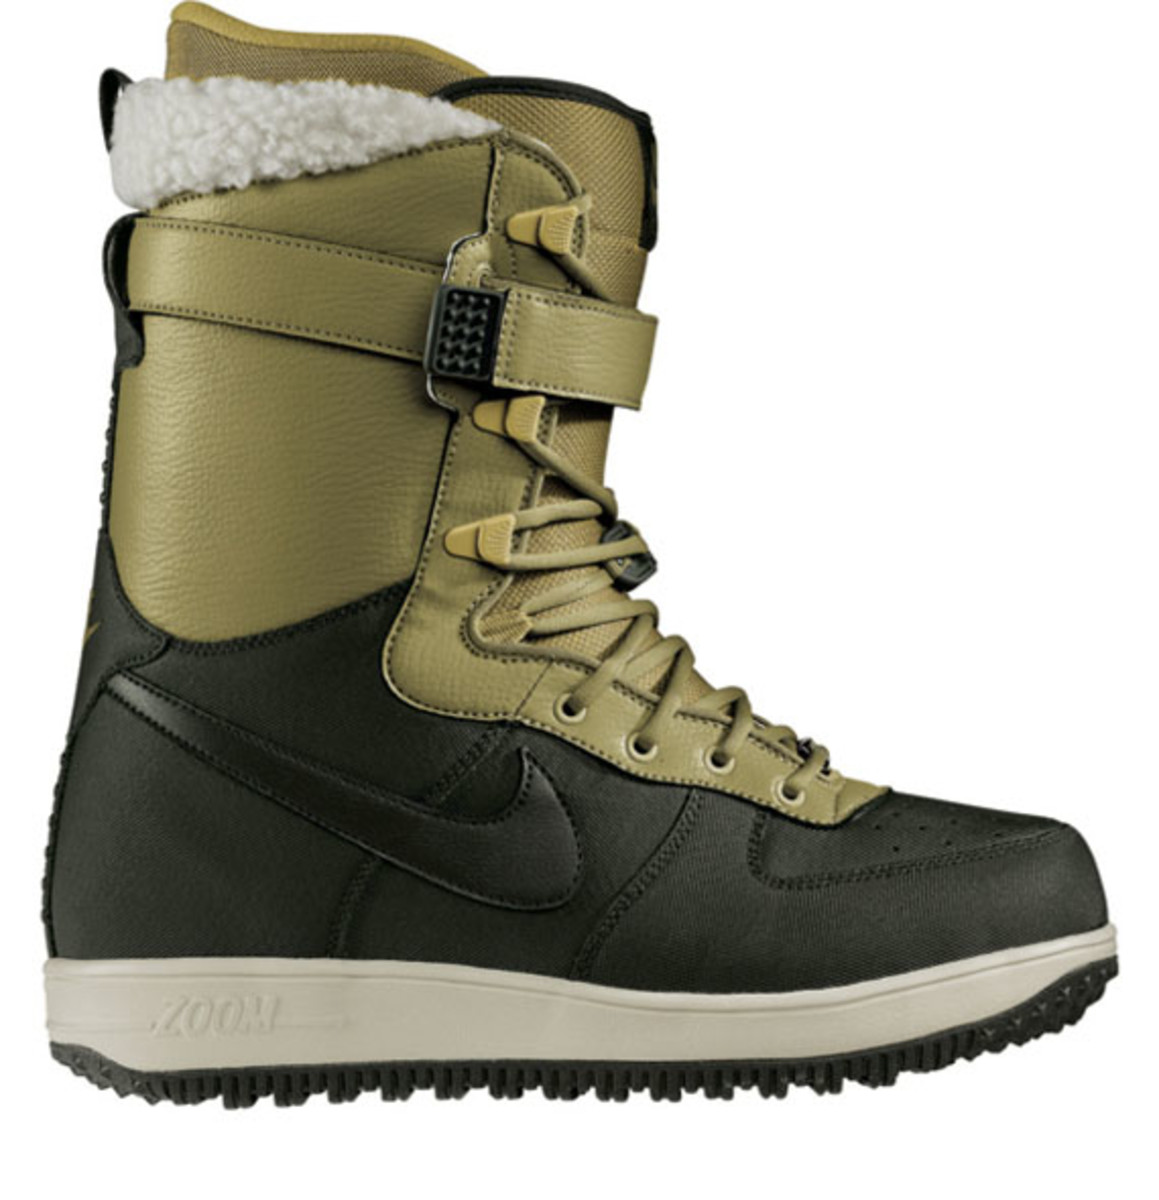 nike-snowboarding-boots-4